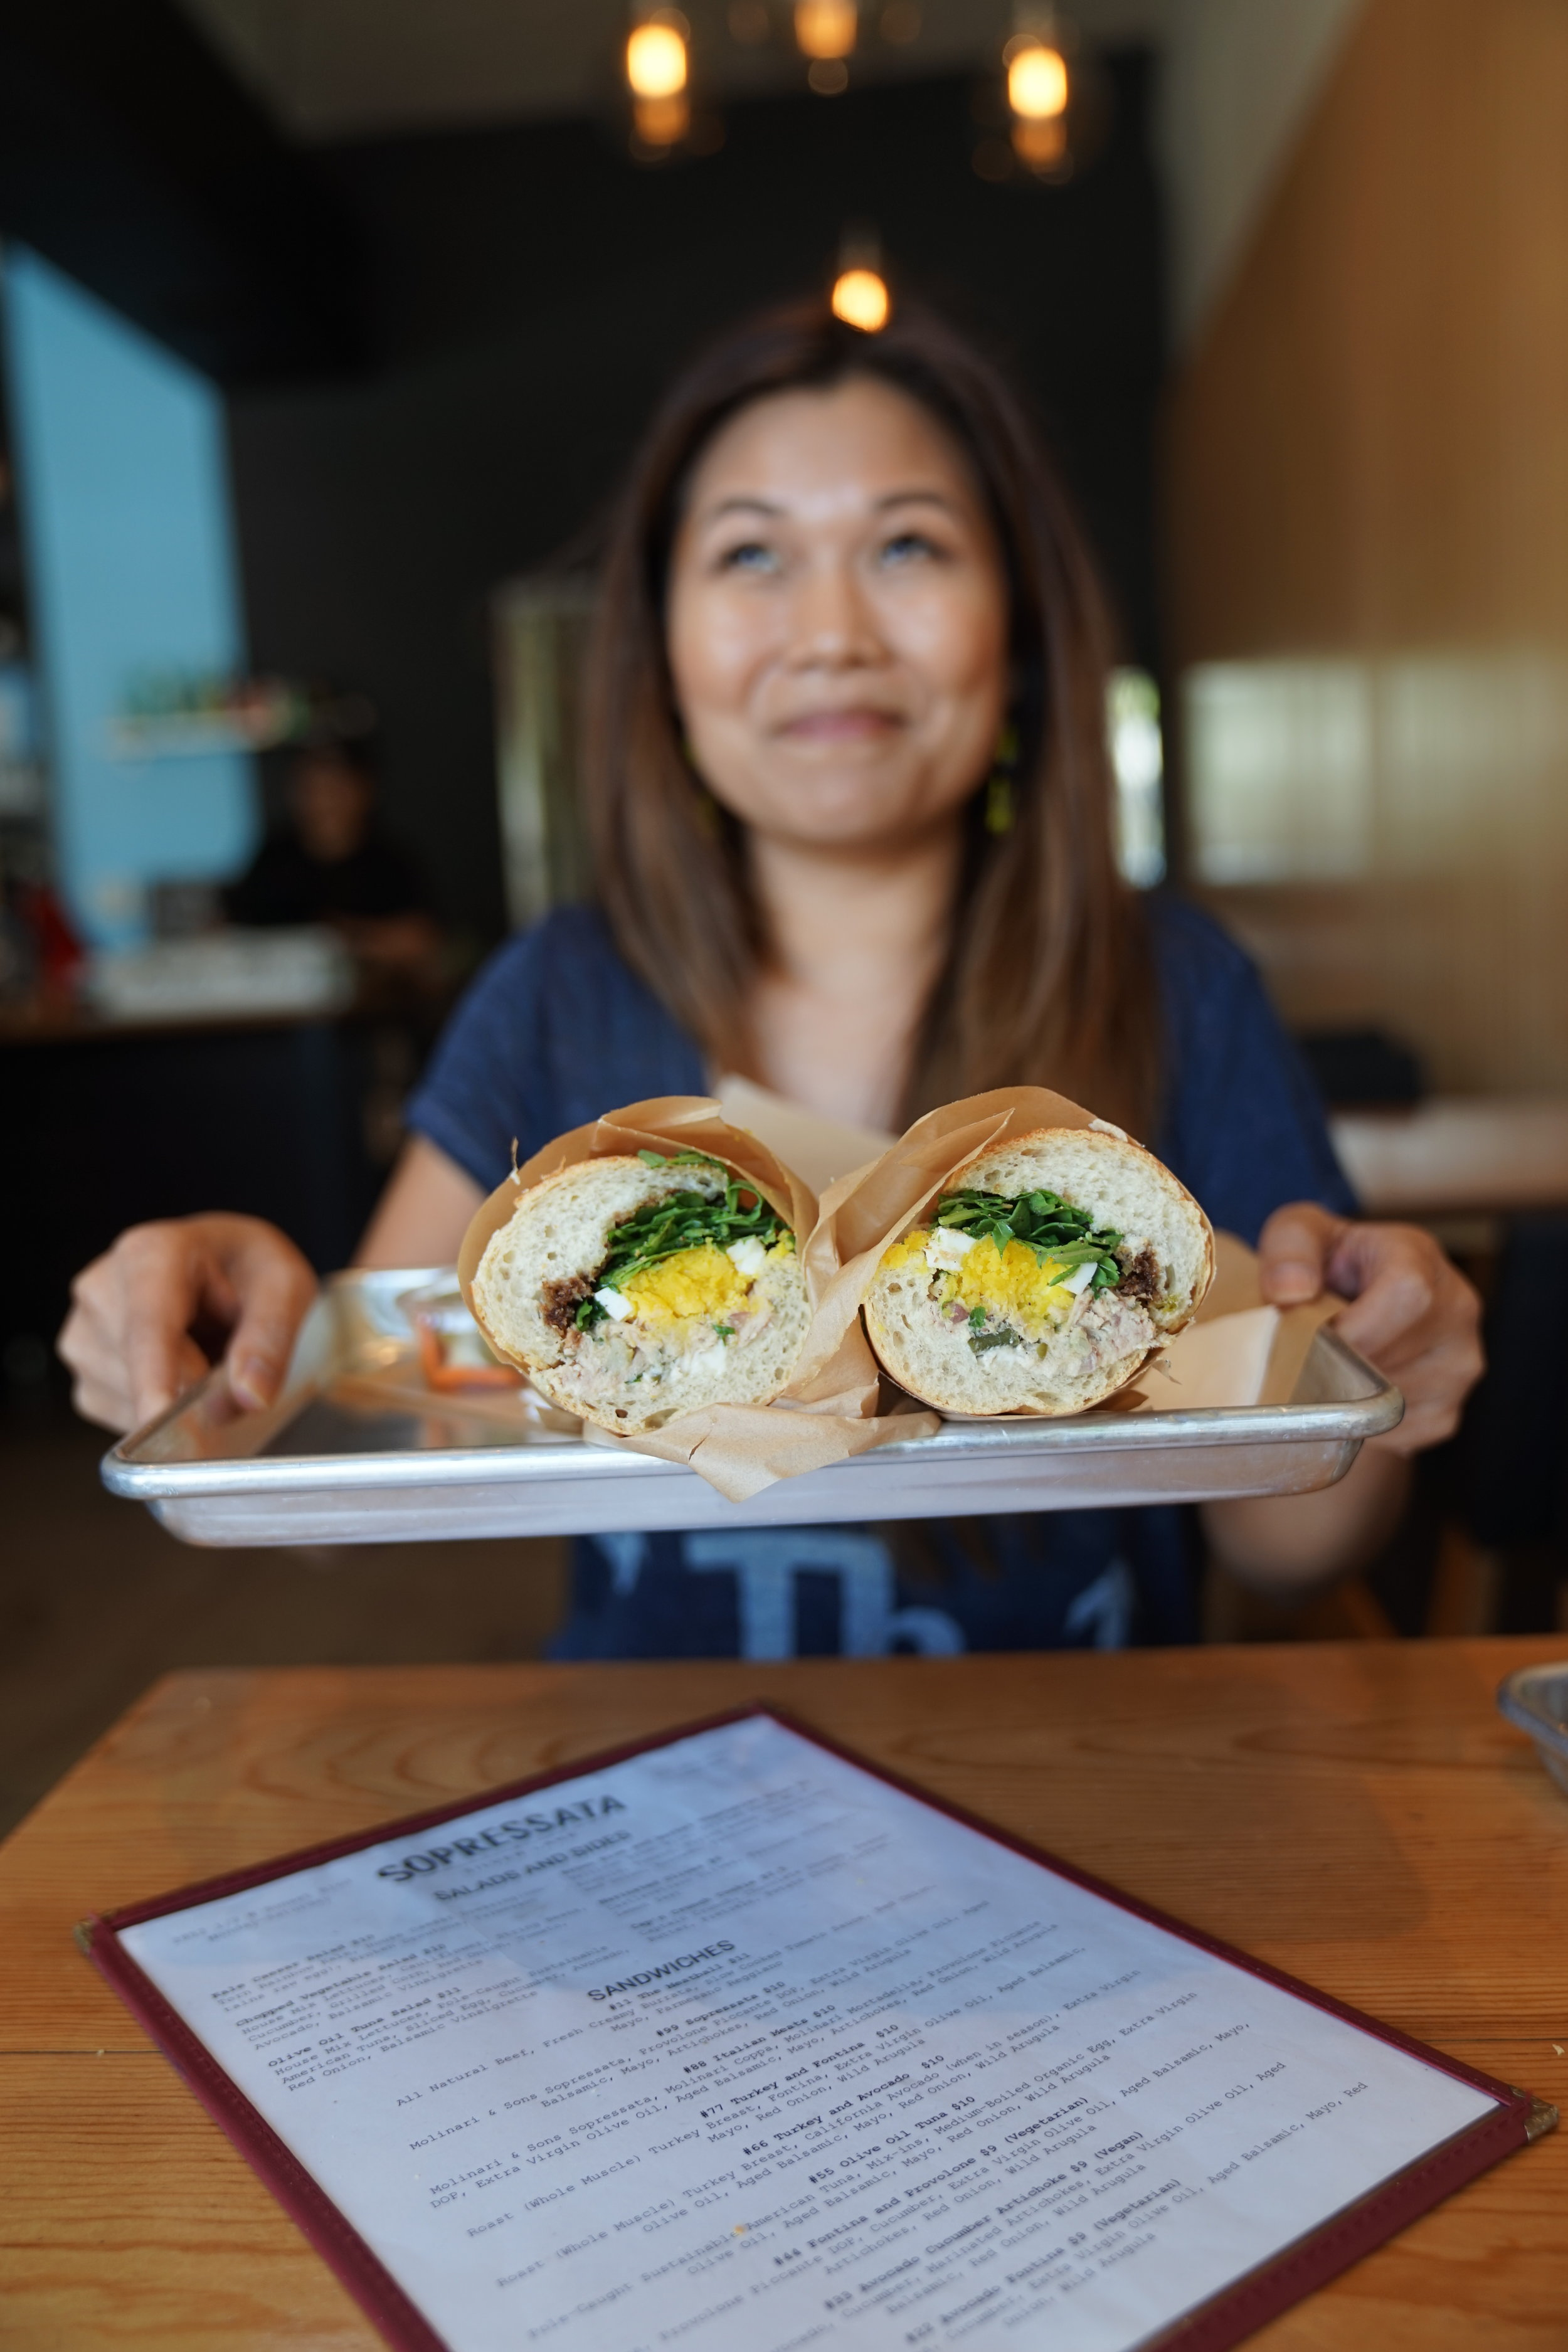 Jenn Wong & #55 at Sopressata  When sandwiches are too complicated to make at home, treat yo' self